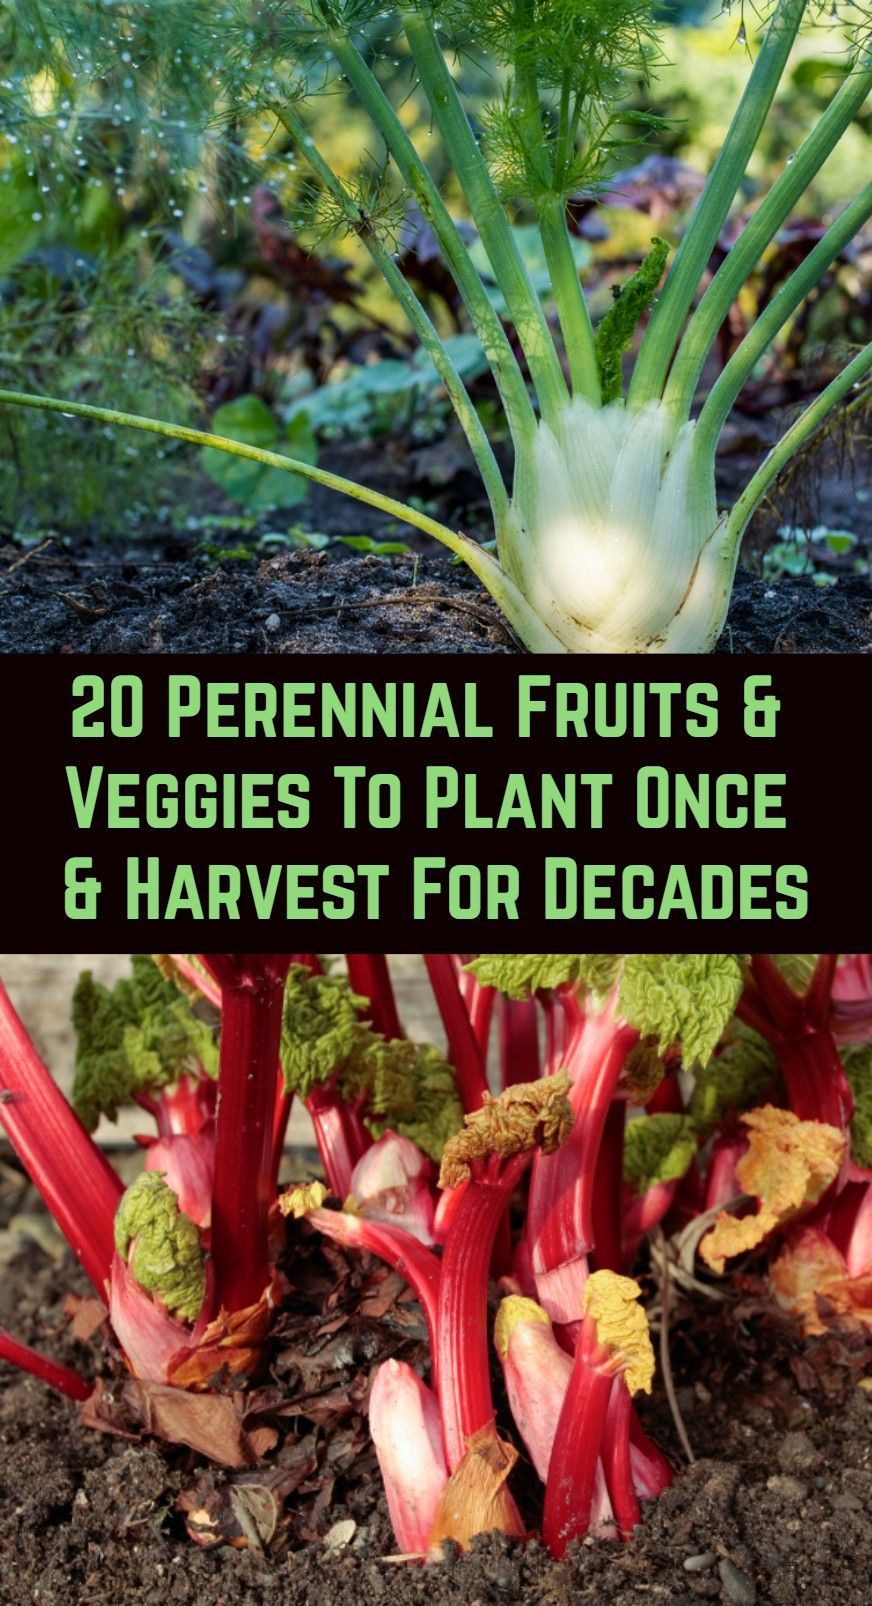 20 Perennial Fruits & Veggies To Plant Once & Harvest Year After Year